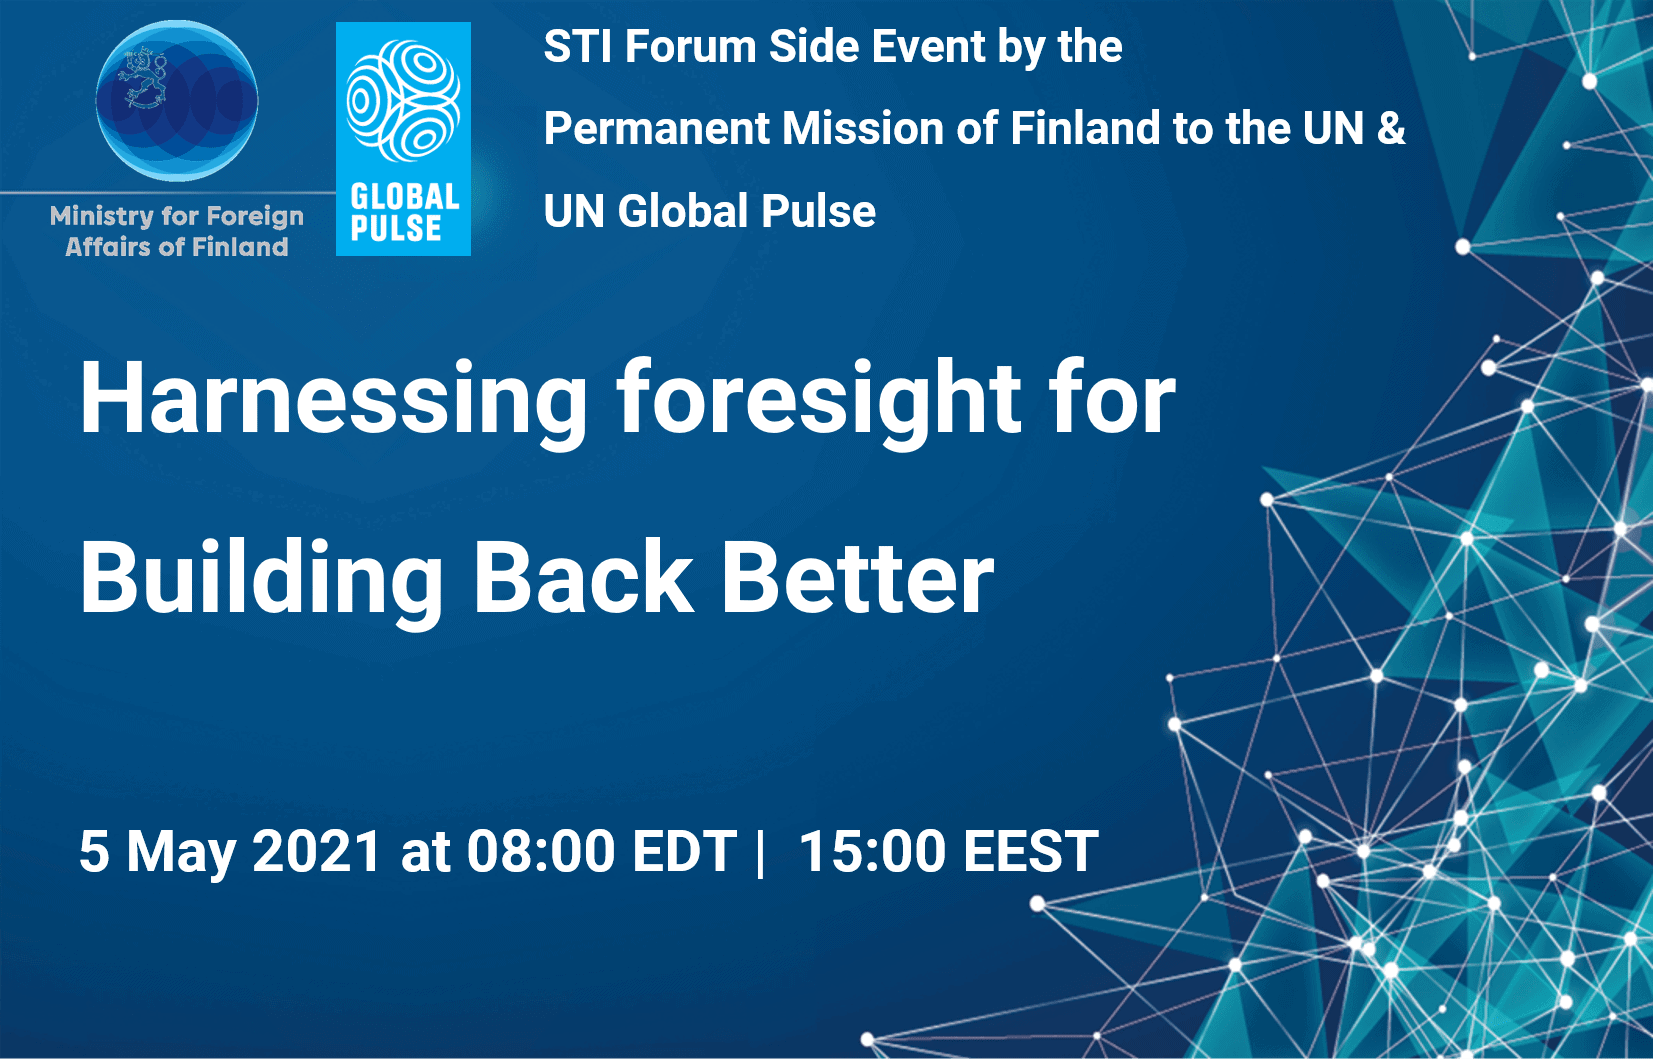 Harnessing Foresight for Building Back Better: STI Forum - Online Side Event 1